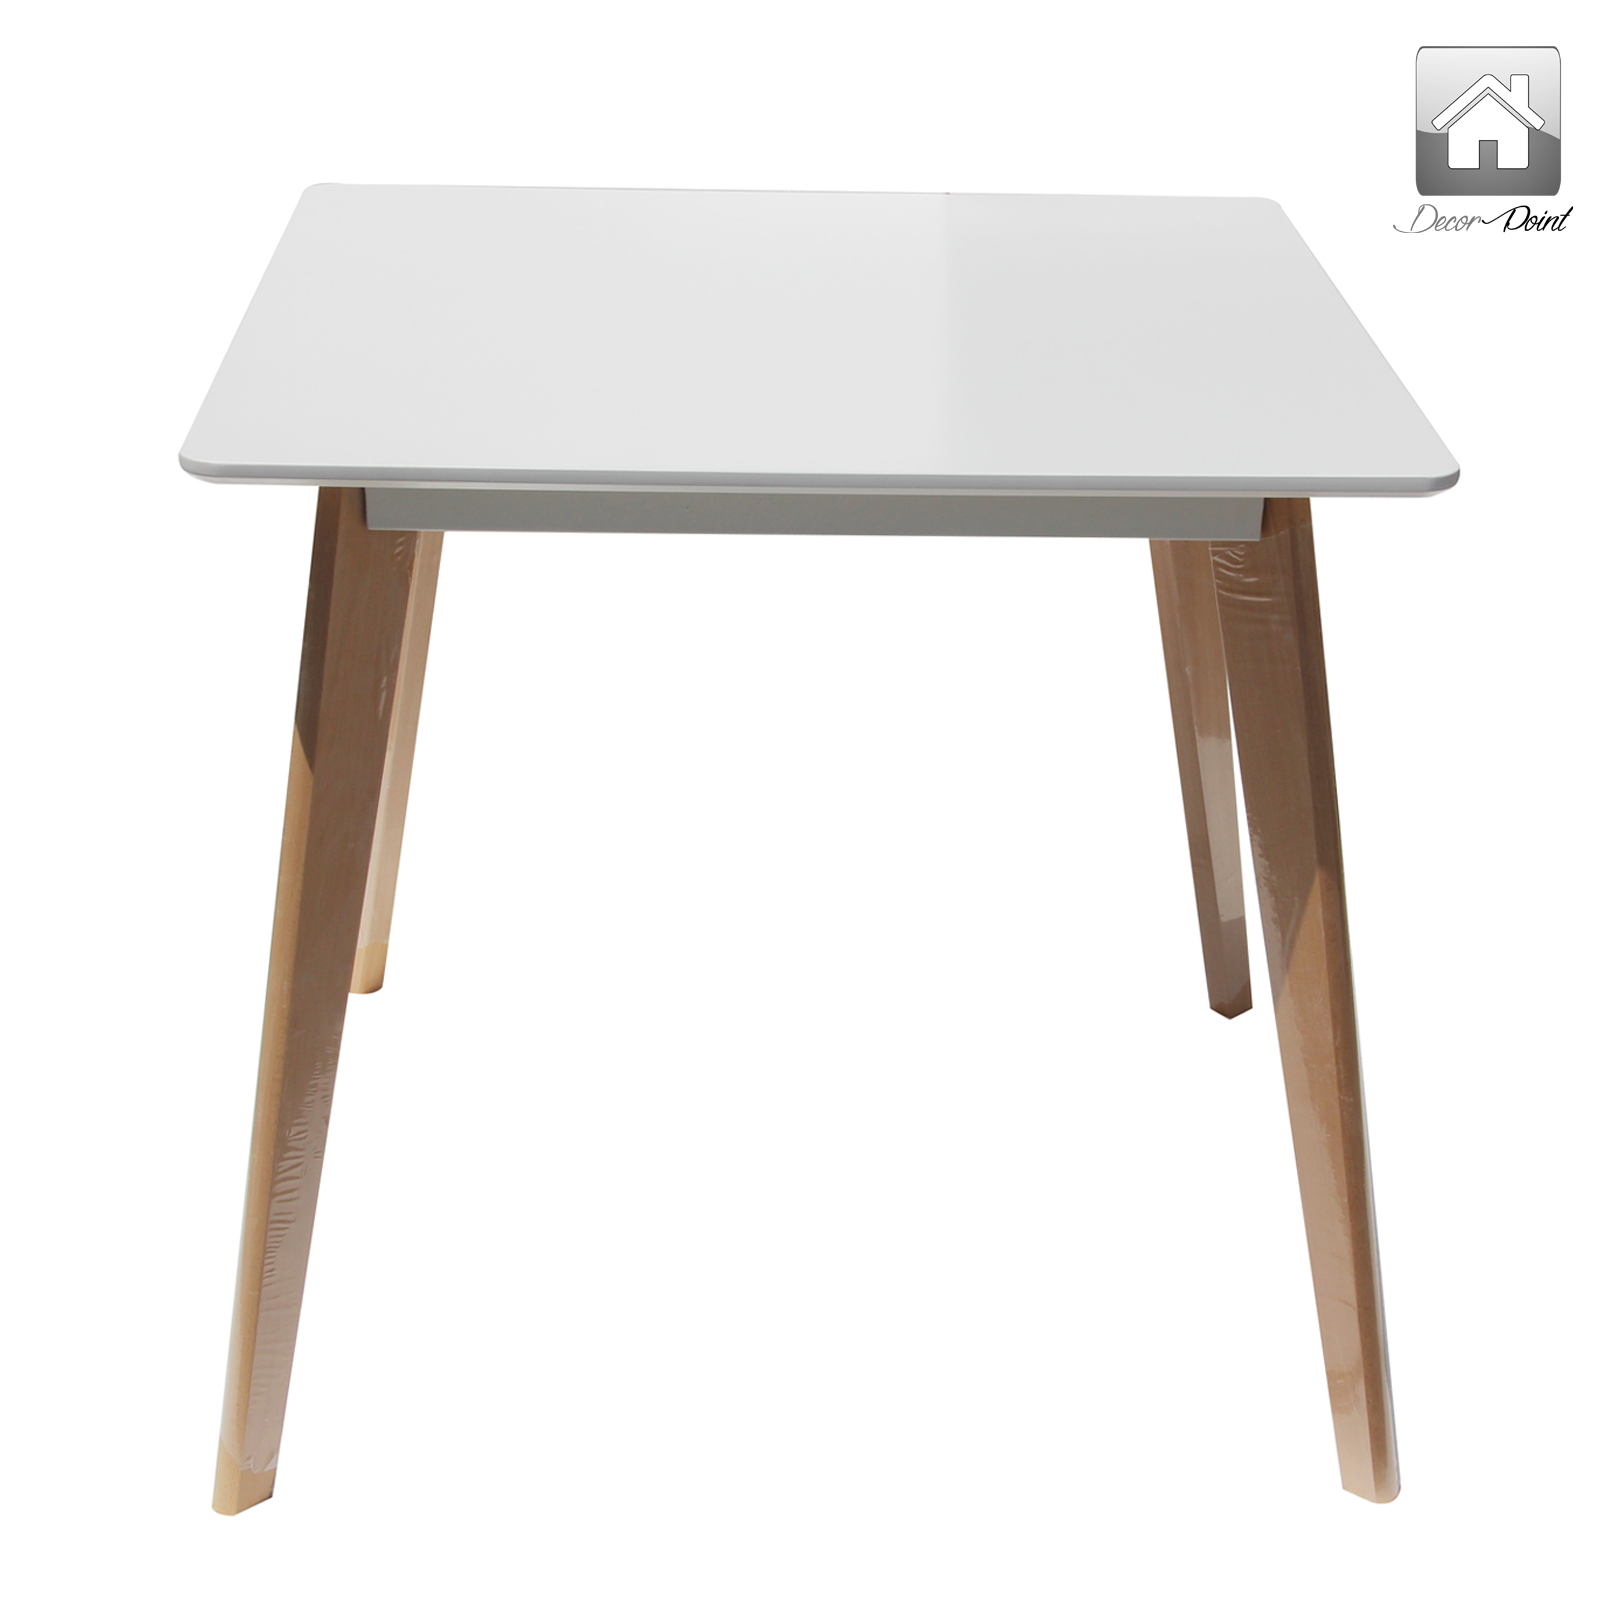 Replica eames dsw city dining table white designer kitchen for Table eames dsw